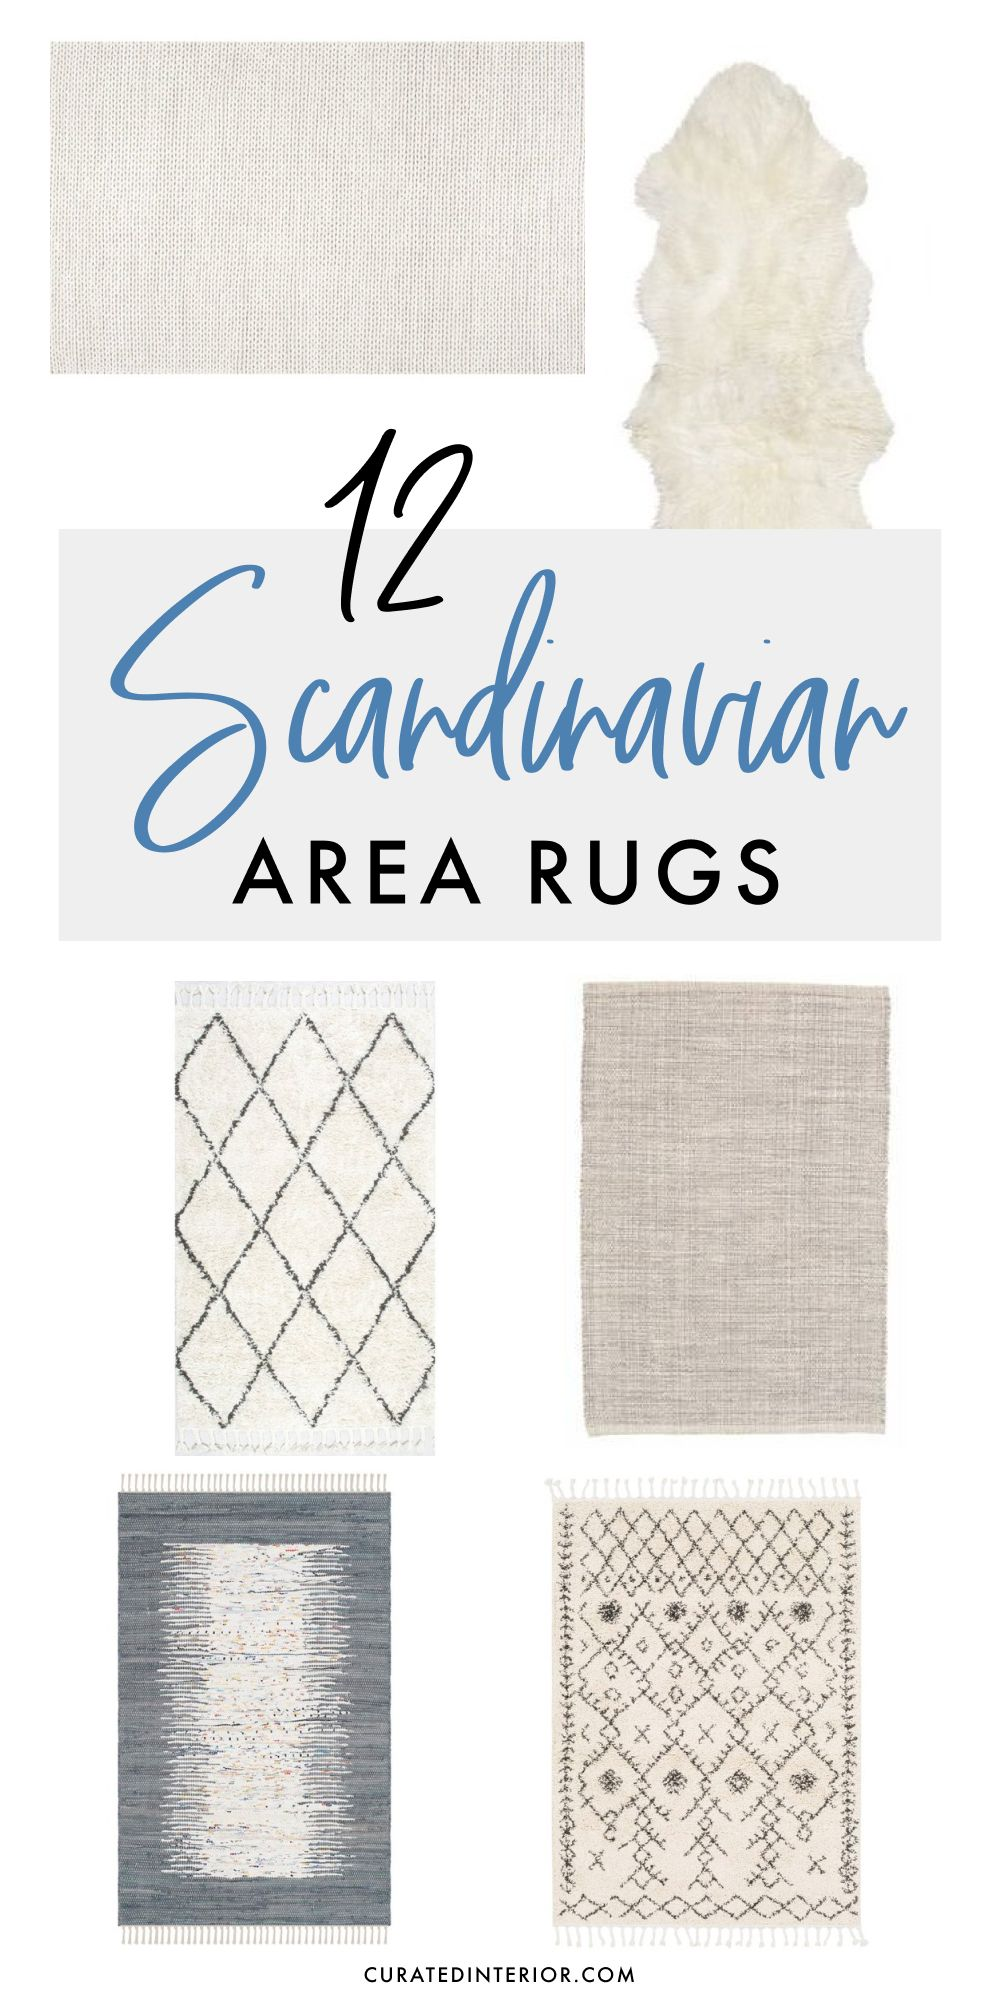 12 Scandinavian Area Rugs